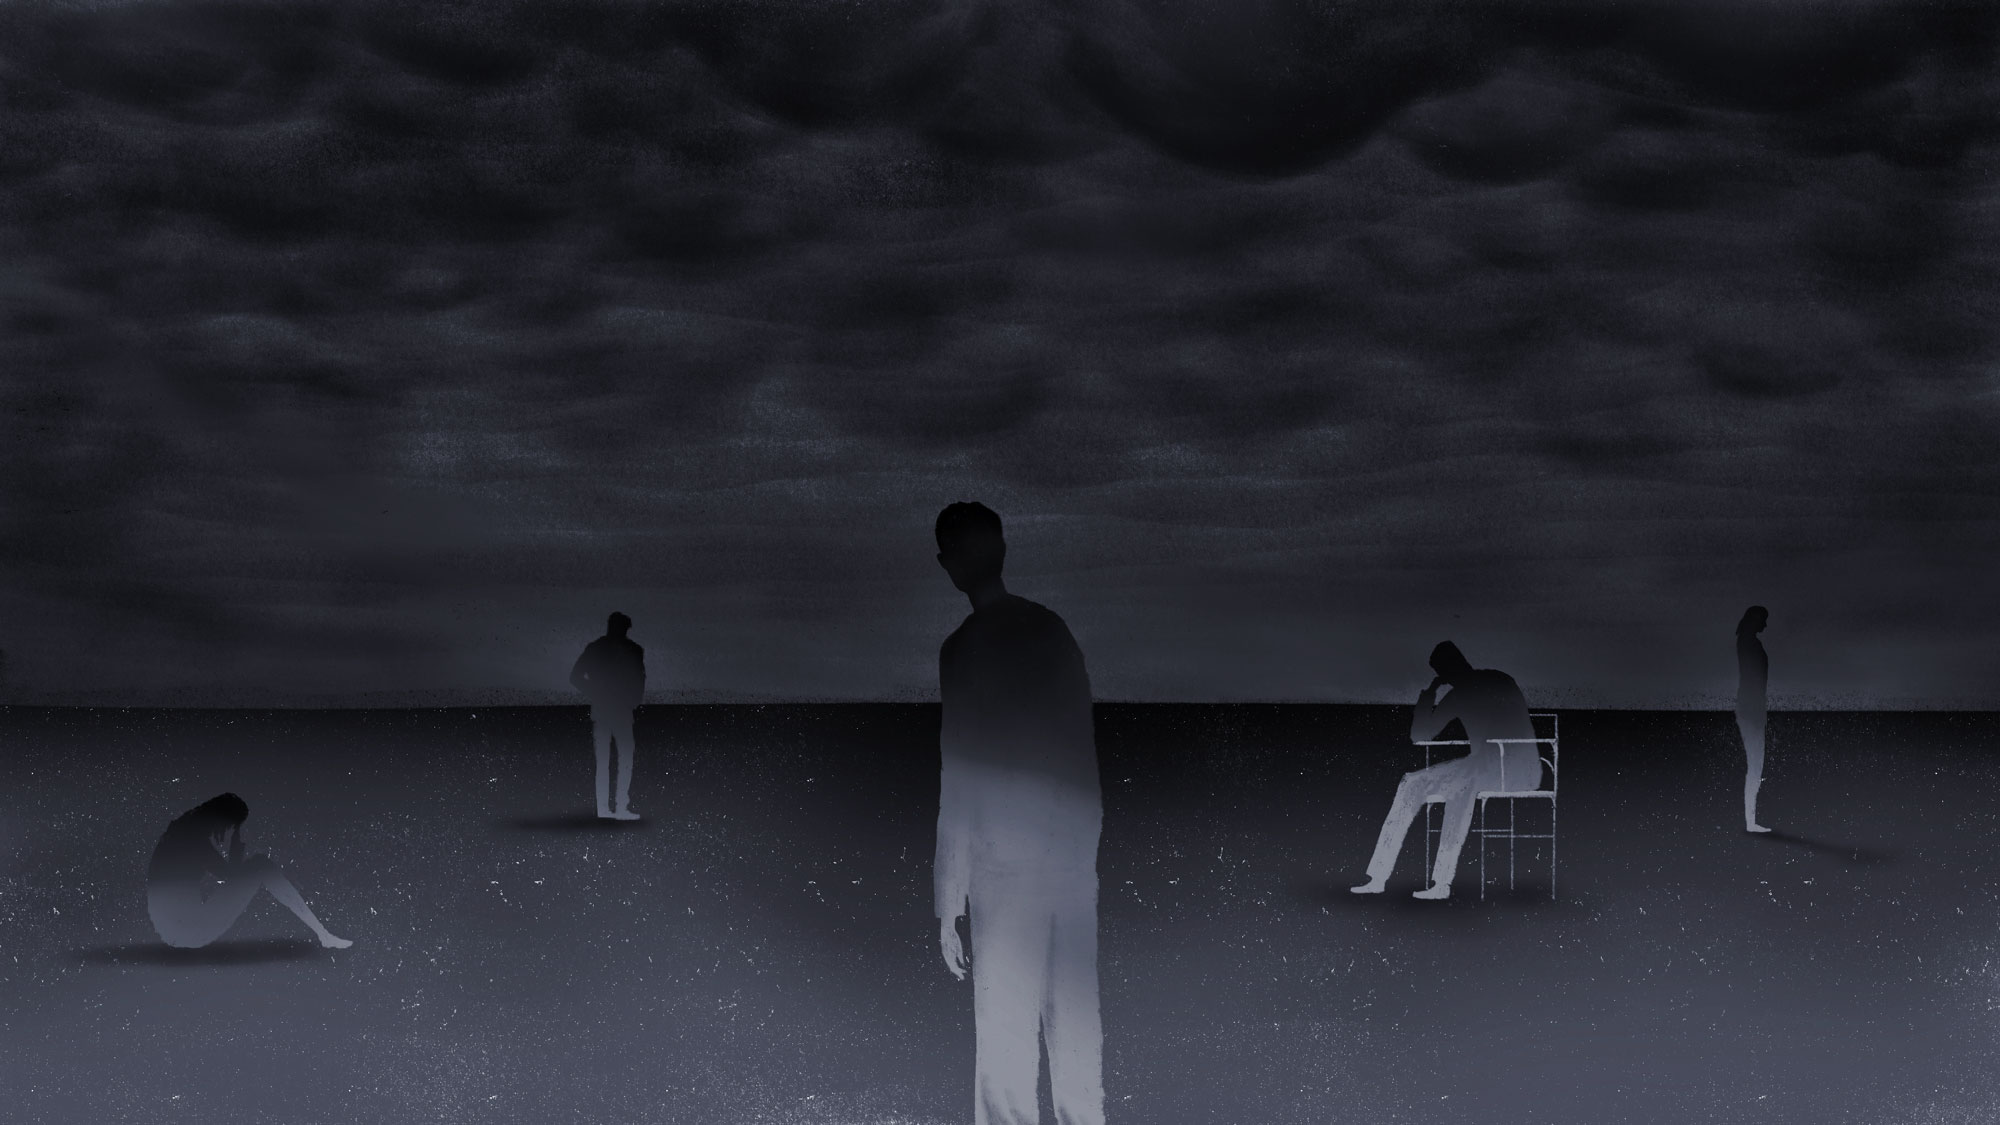 conceptual illustration showing 5 figures in a dark empty landscape